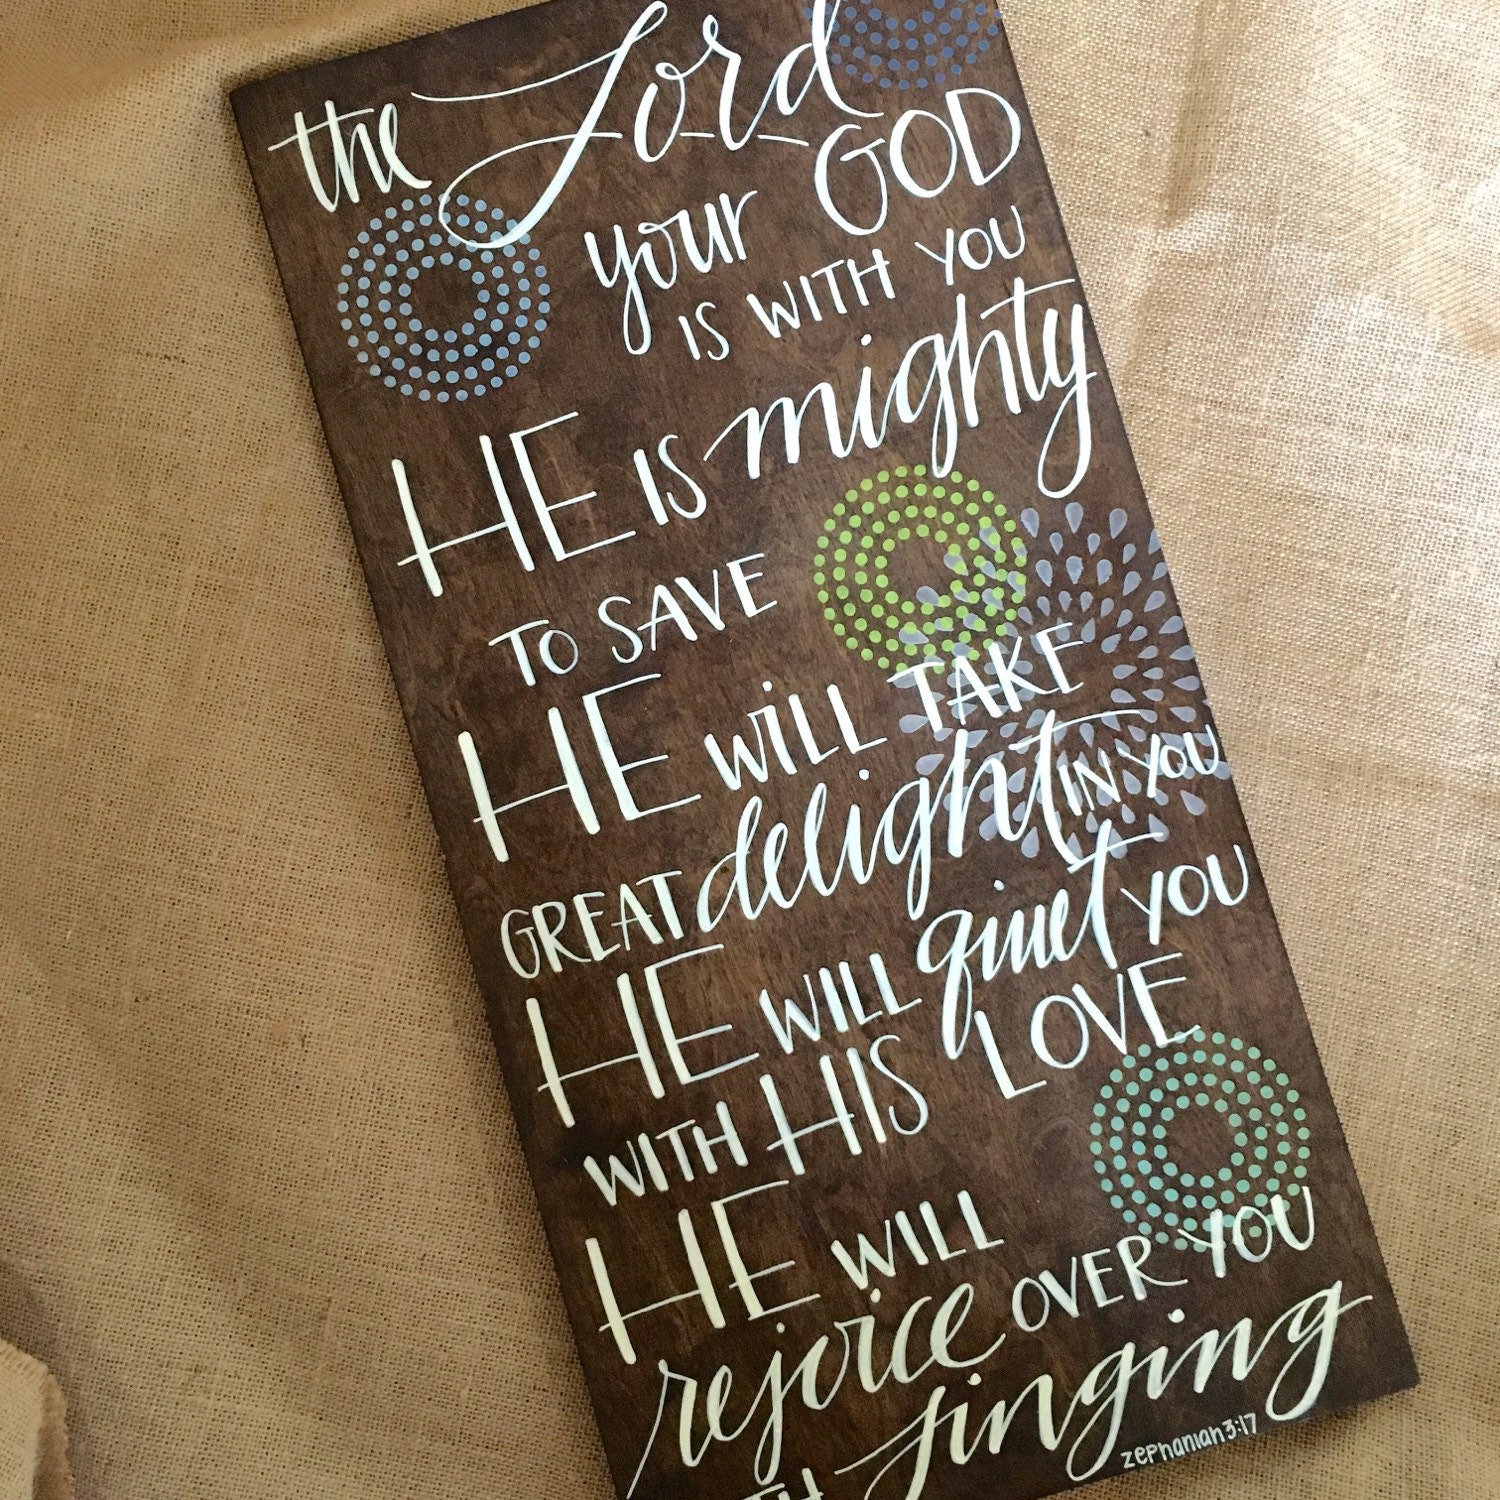 zephaniah 317 wooden sign bible verse wood scripture sign hand lettered he is mighty to save he will rejoice over you